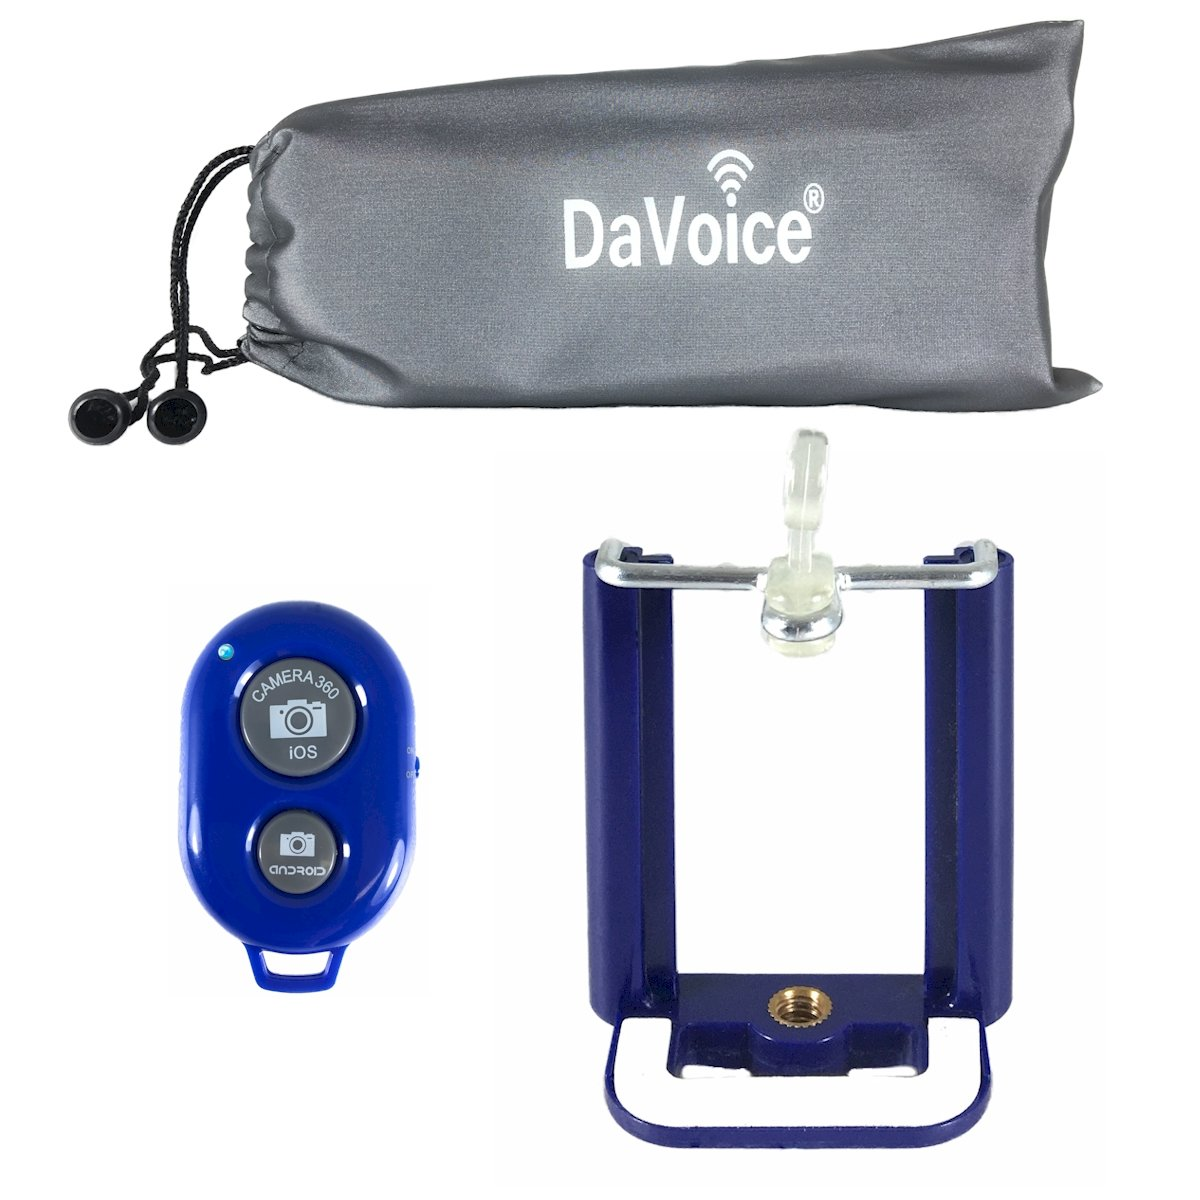 DaVoice Cell Phone Tripod Mount Adapter Holder + Bluetooth Remote Control + Carry Bag for iPhone X Se 8 7 6 6s Plus 5 5s 5c Samsung Galaxy S9 S8 S7 S6 S5 Edge Universal Bracket Attachment (Navy Blue)